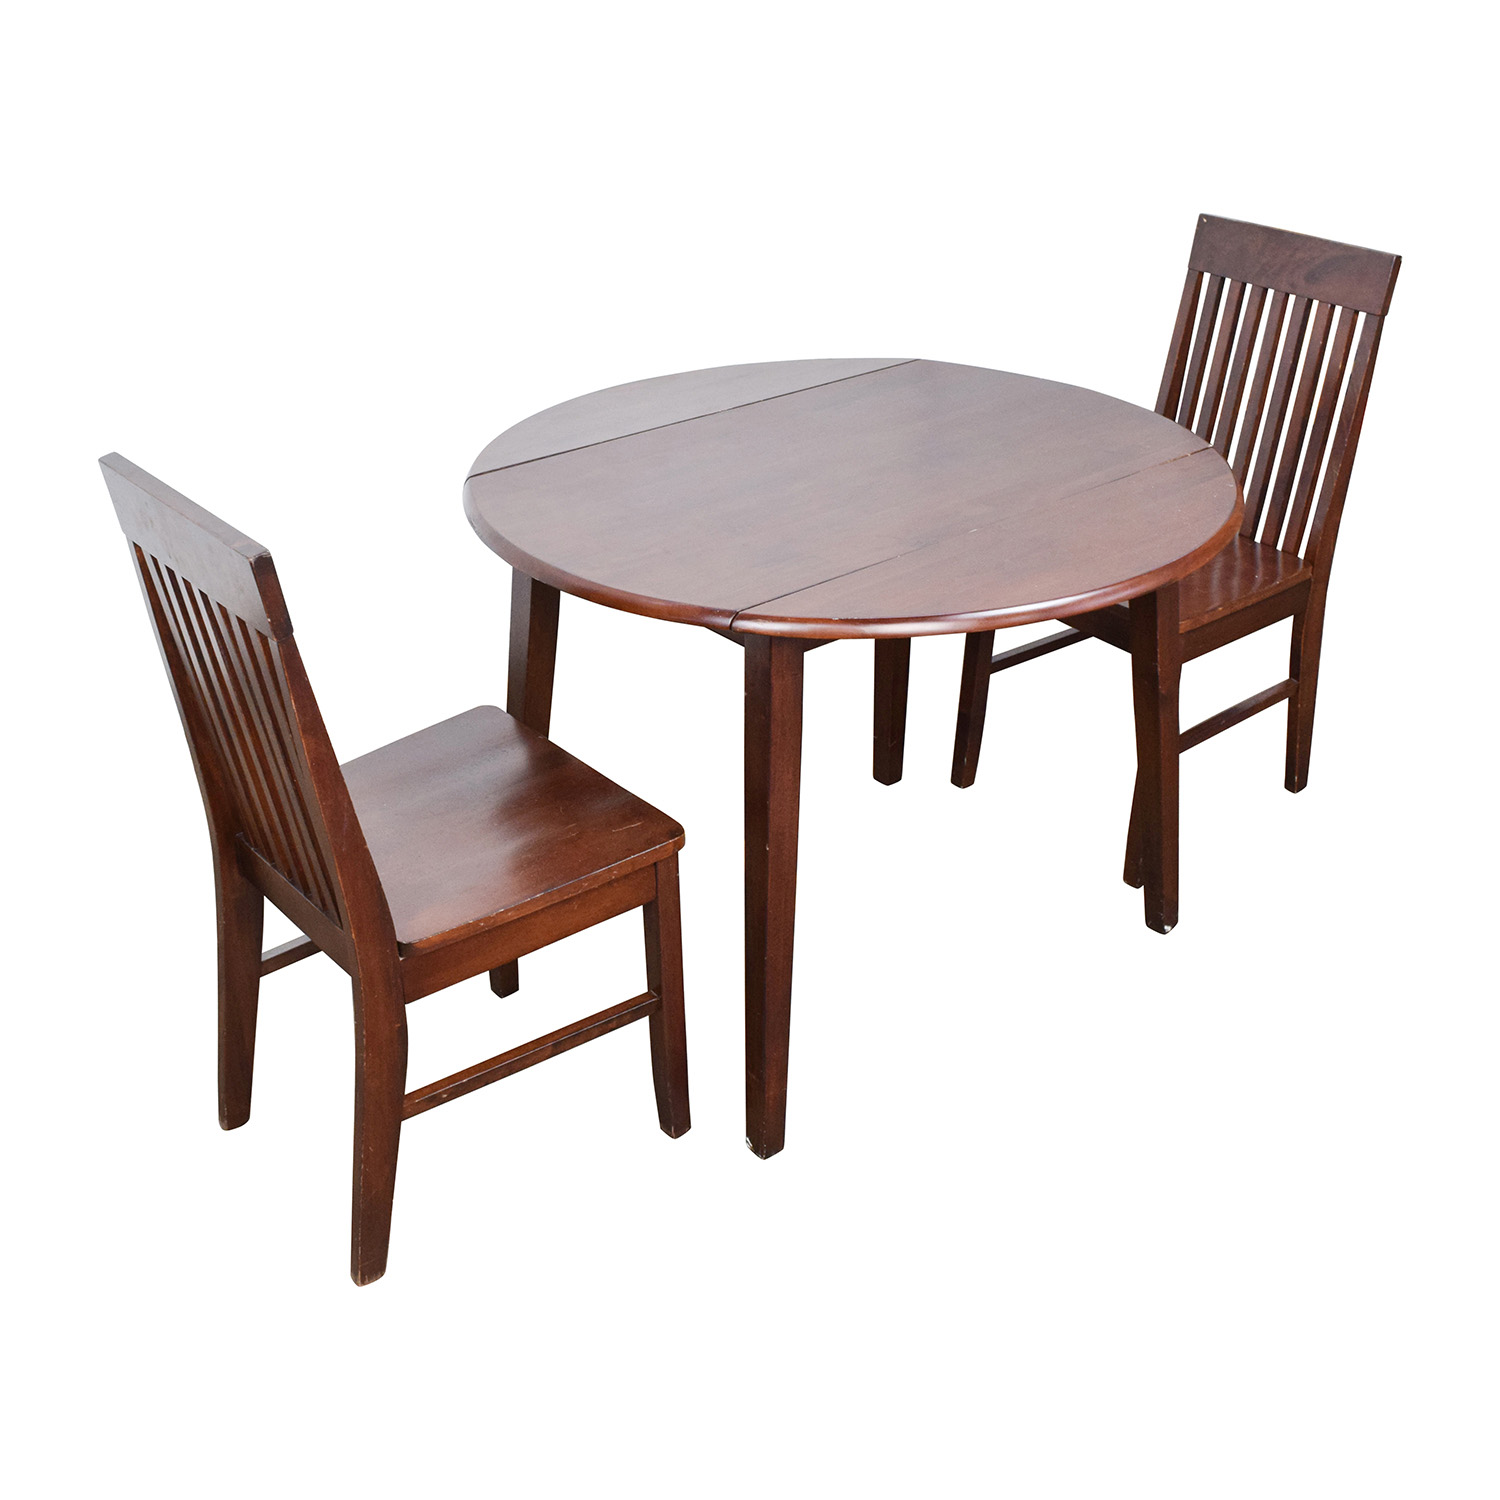 60 off round dining table with folding sides and chairs for Round dining table and chairs